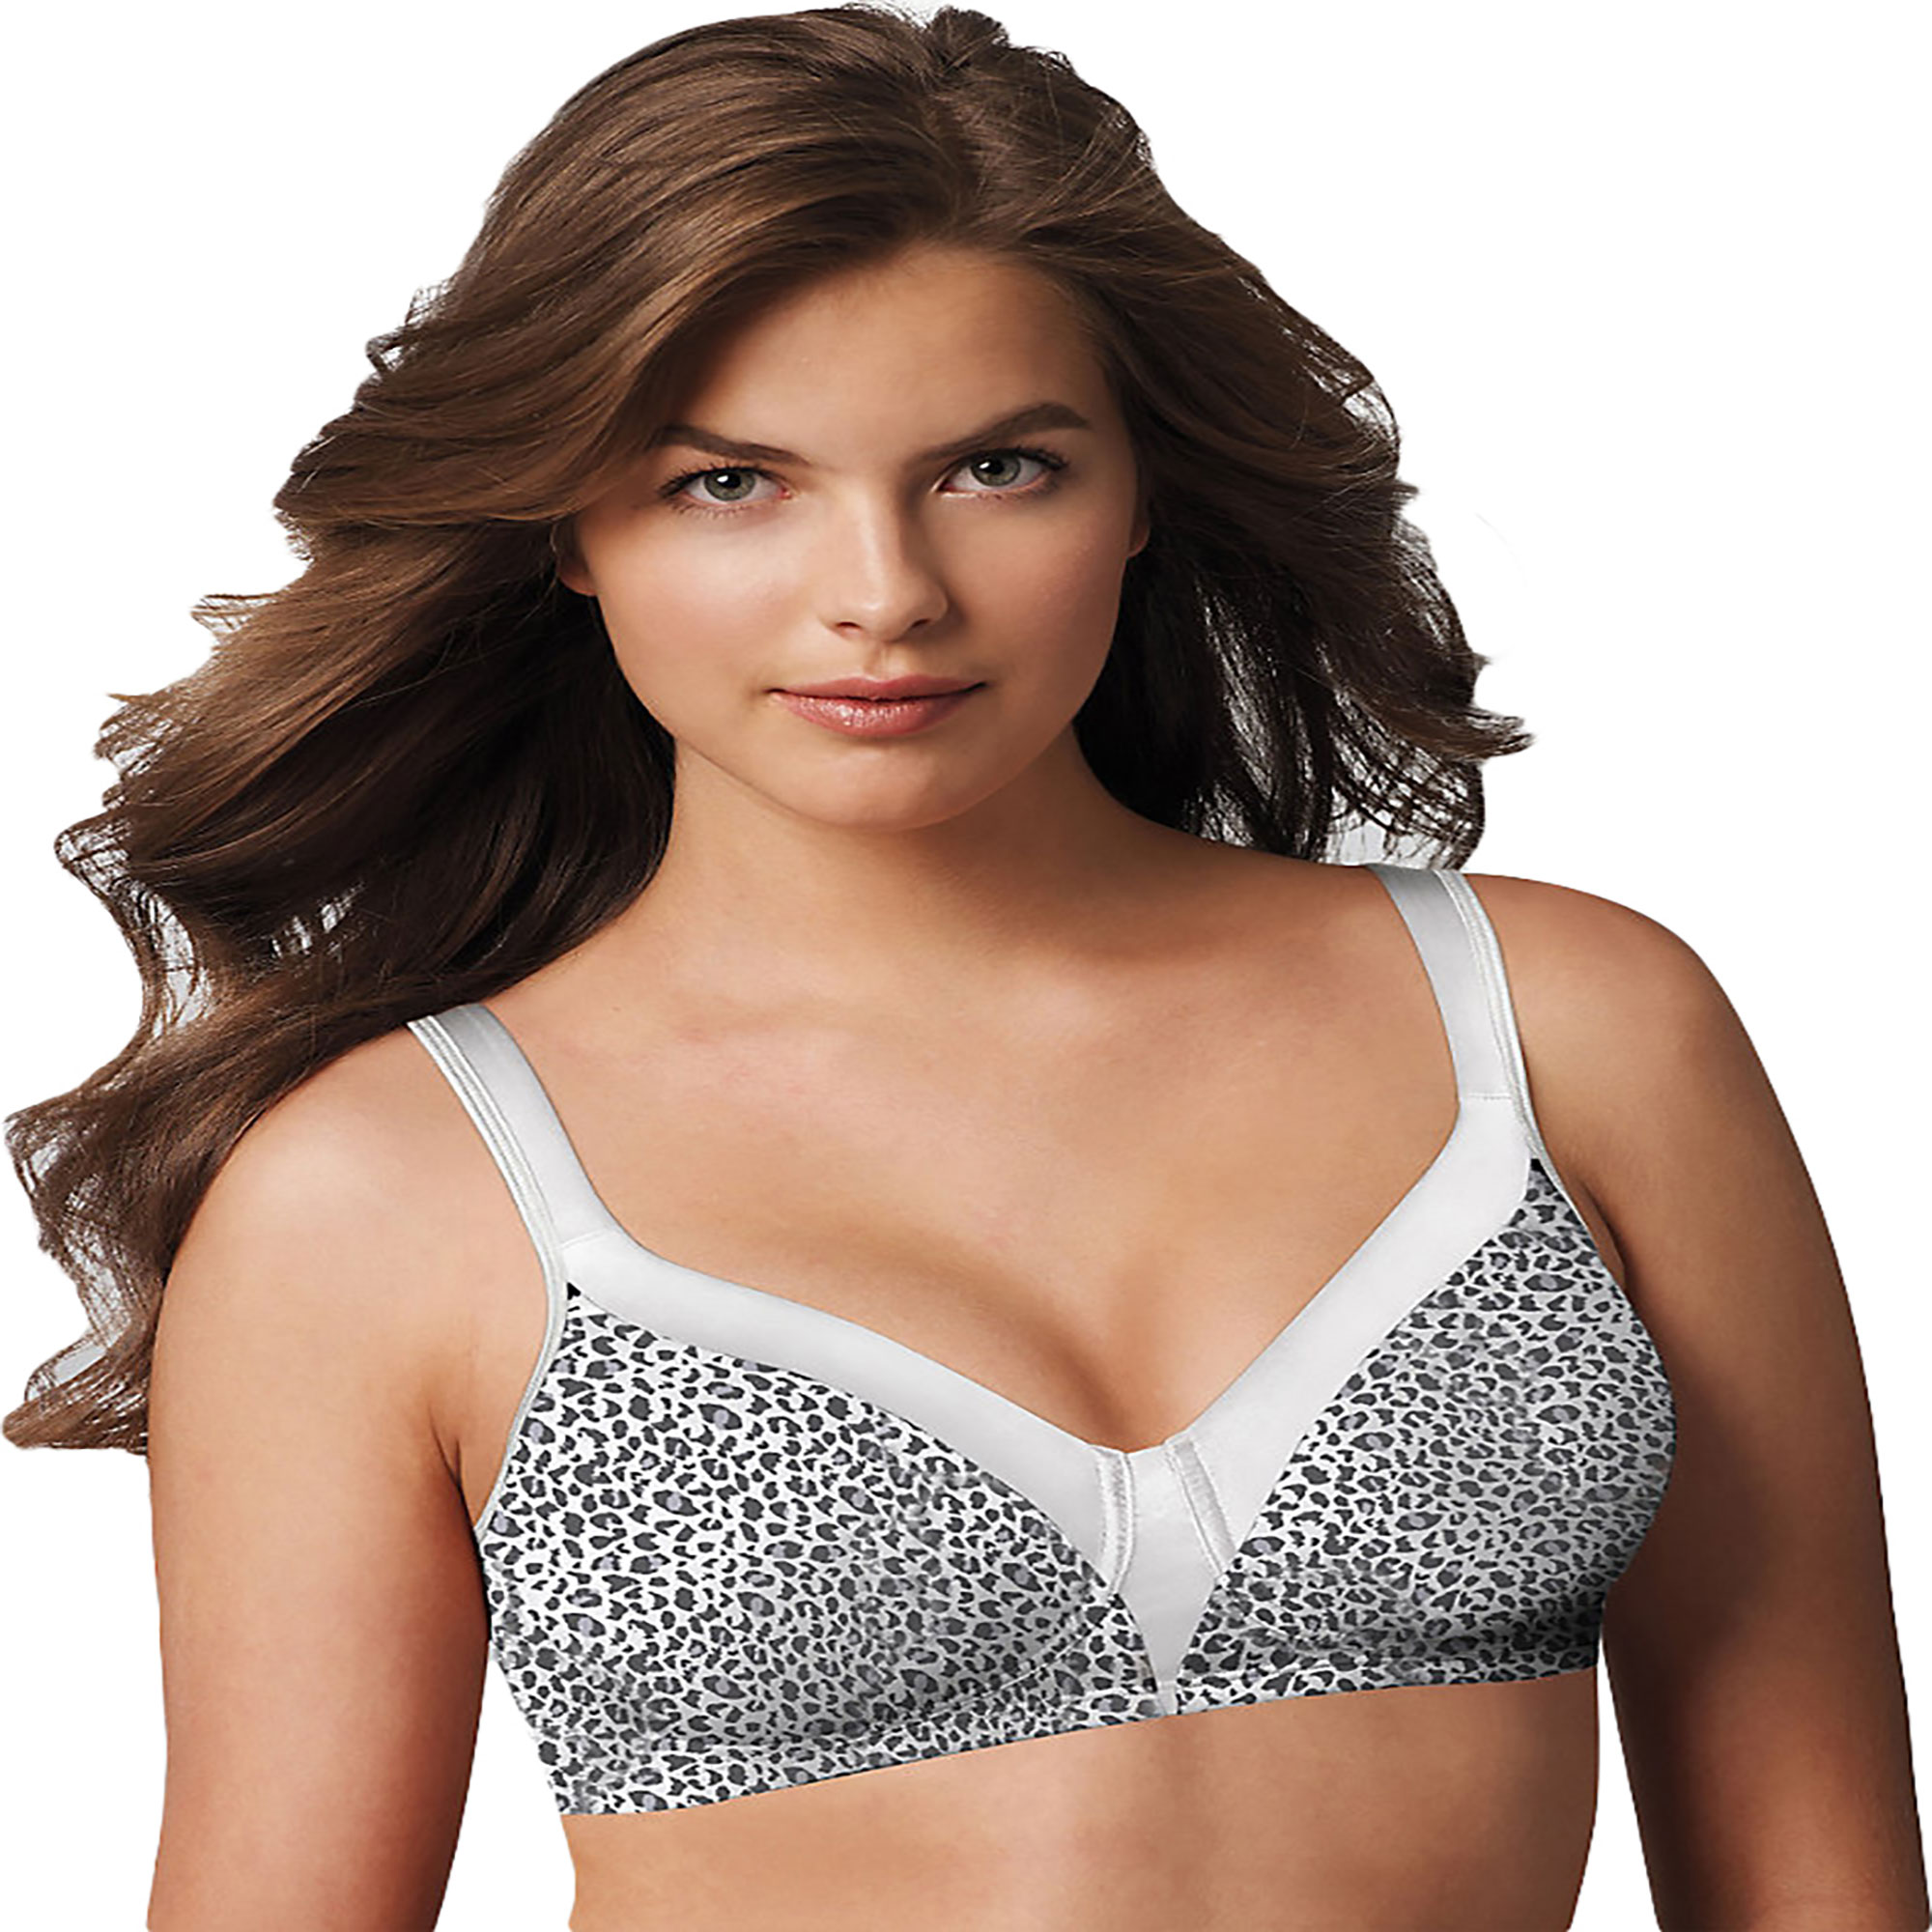 Playtex 18 Hour Sensationally Sleek Wirefree Bra, Style 4803